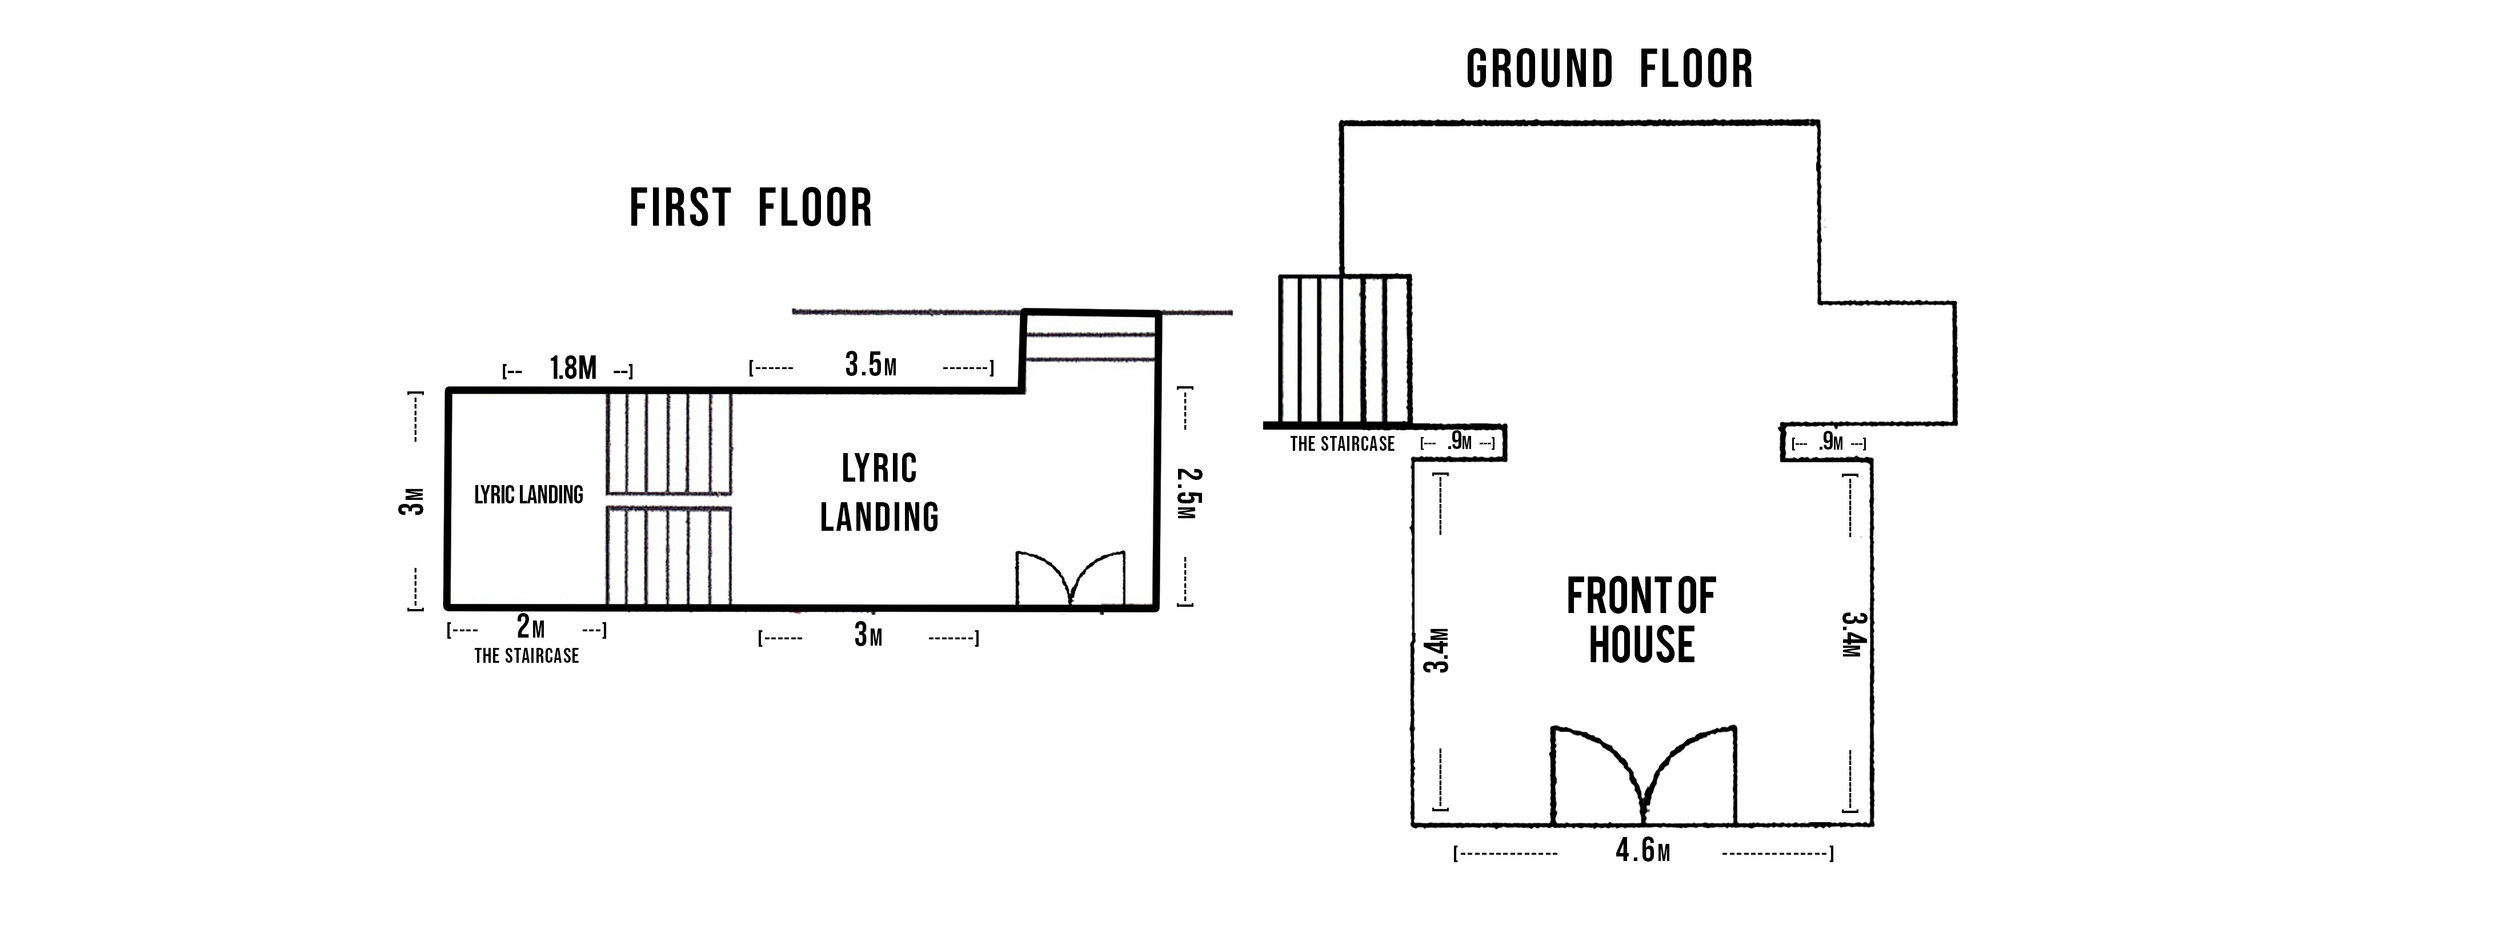 Floorplans for spaces-.jpg